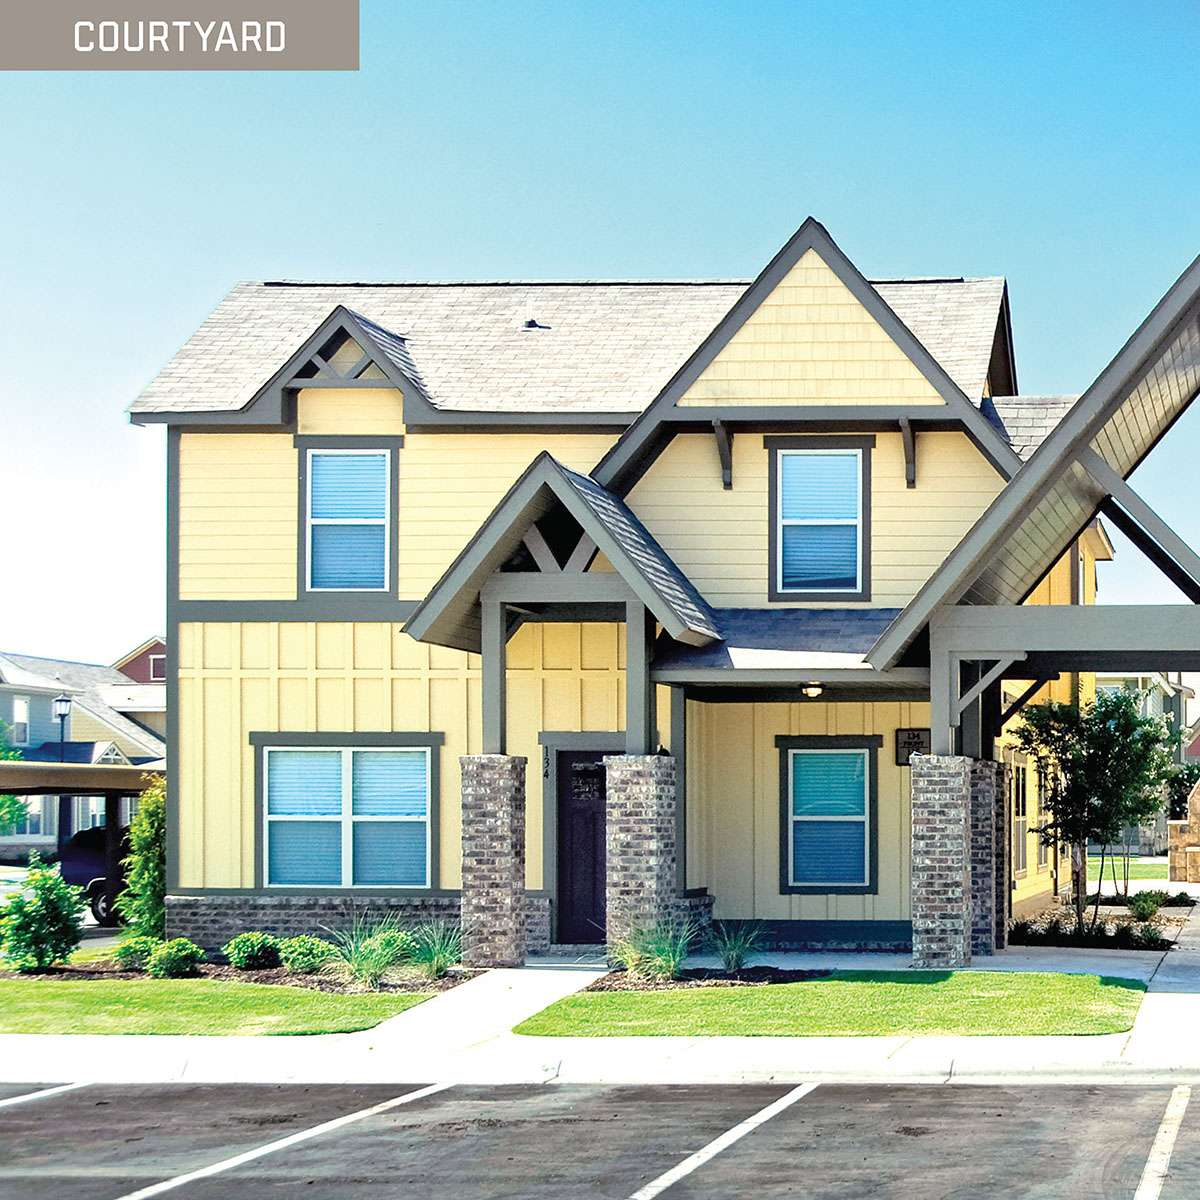 5 BEDROOM 5 BATH - Redpoint Tallahassee